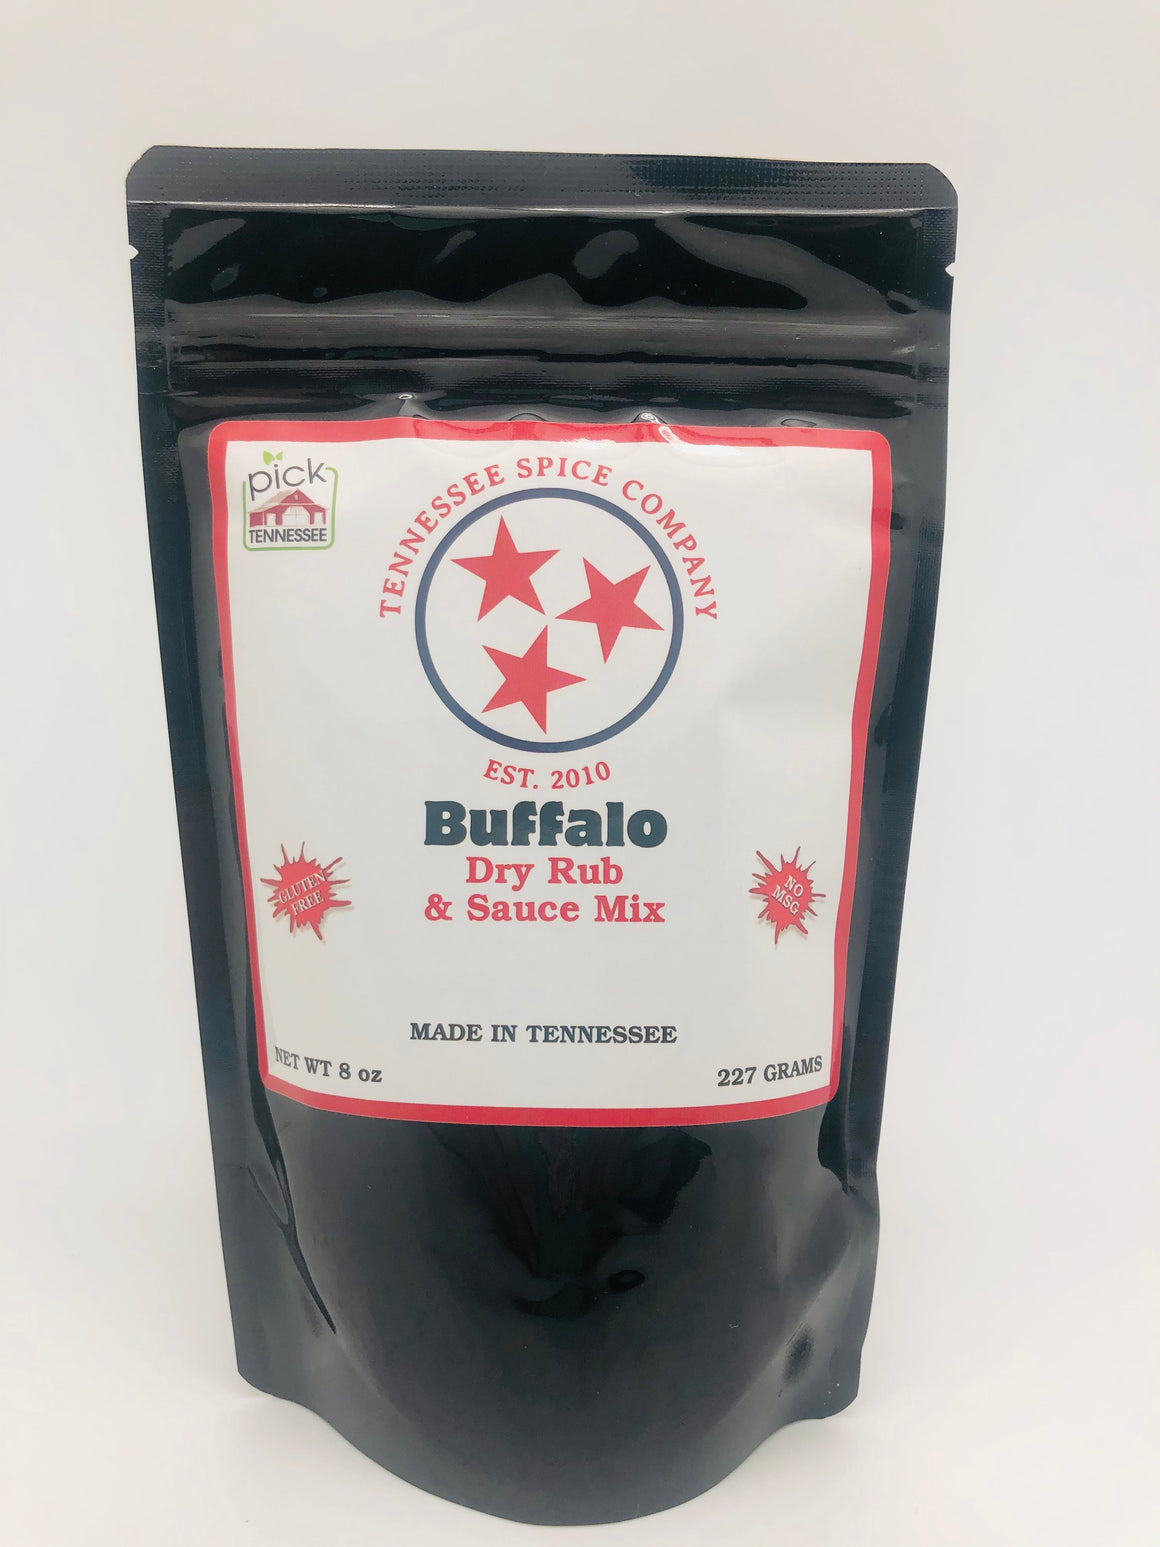 Buffalo Dry Rub & Sauce Mix - TN Spice